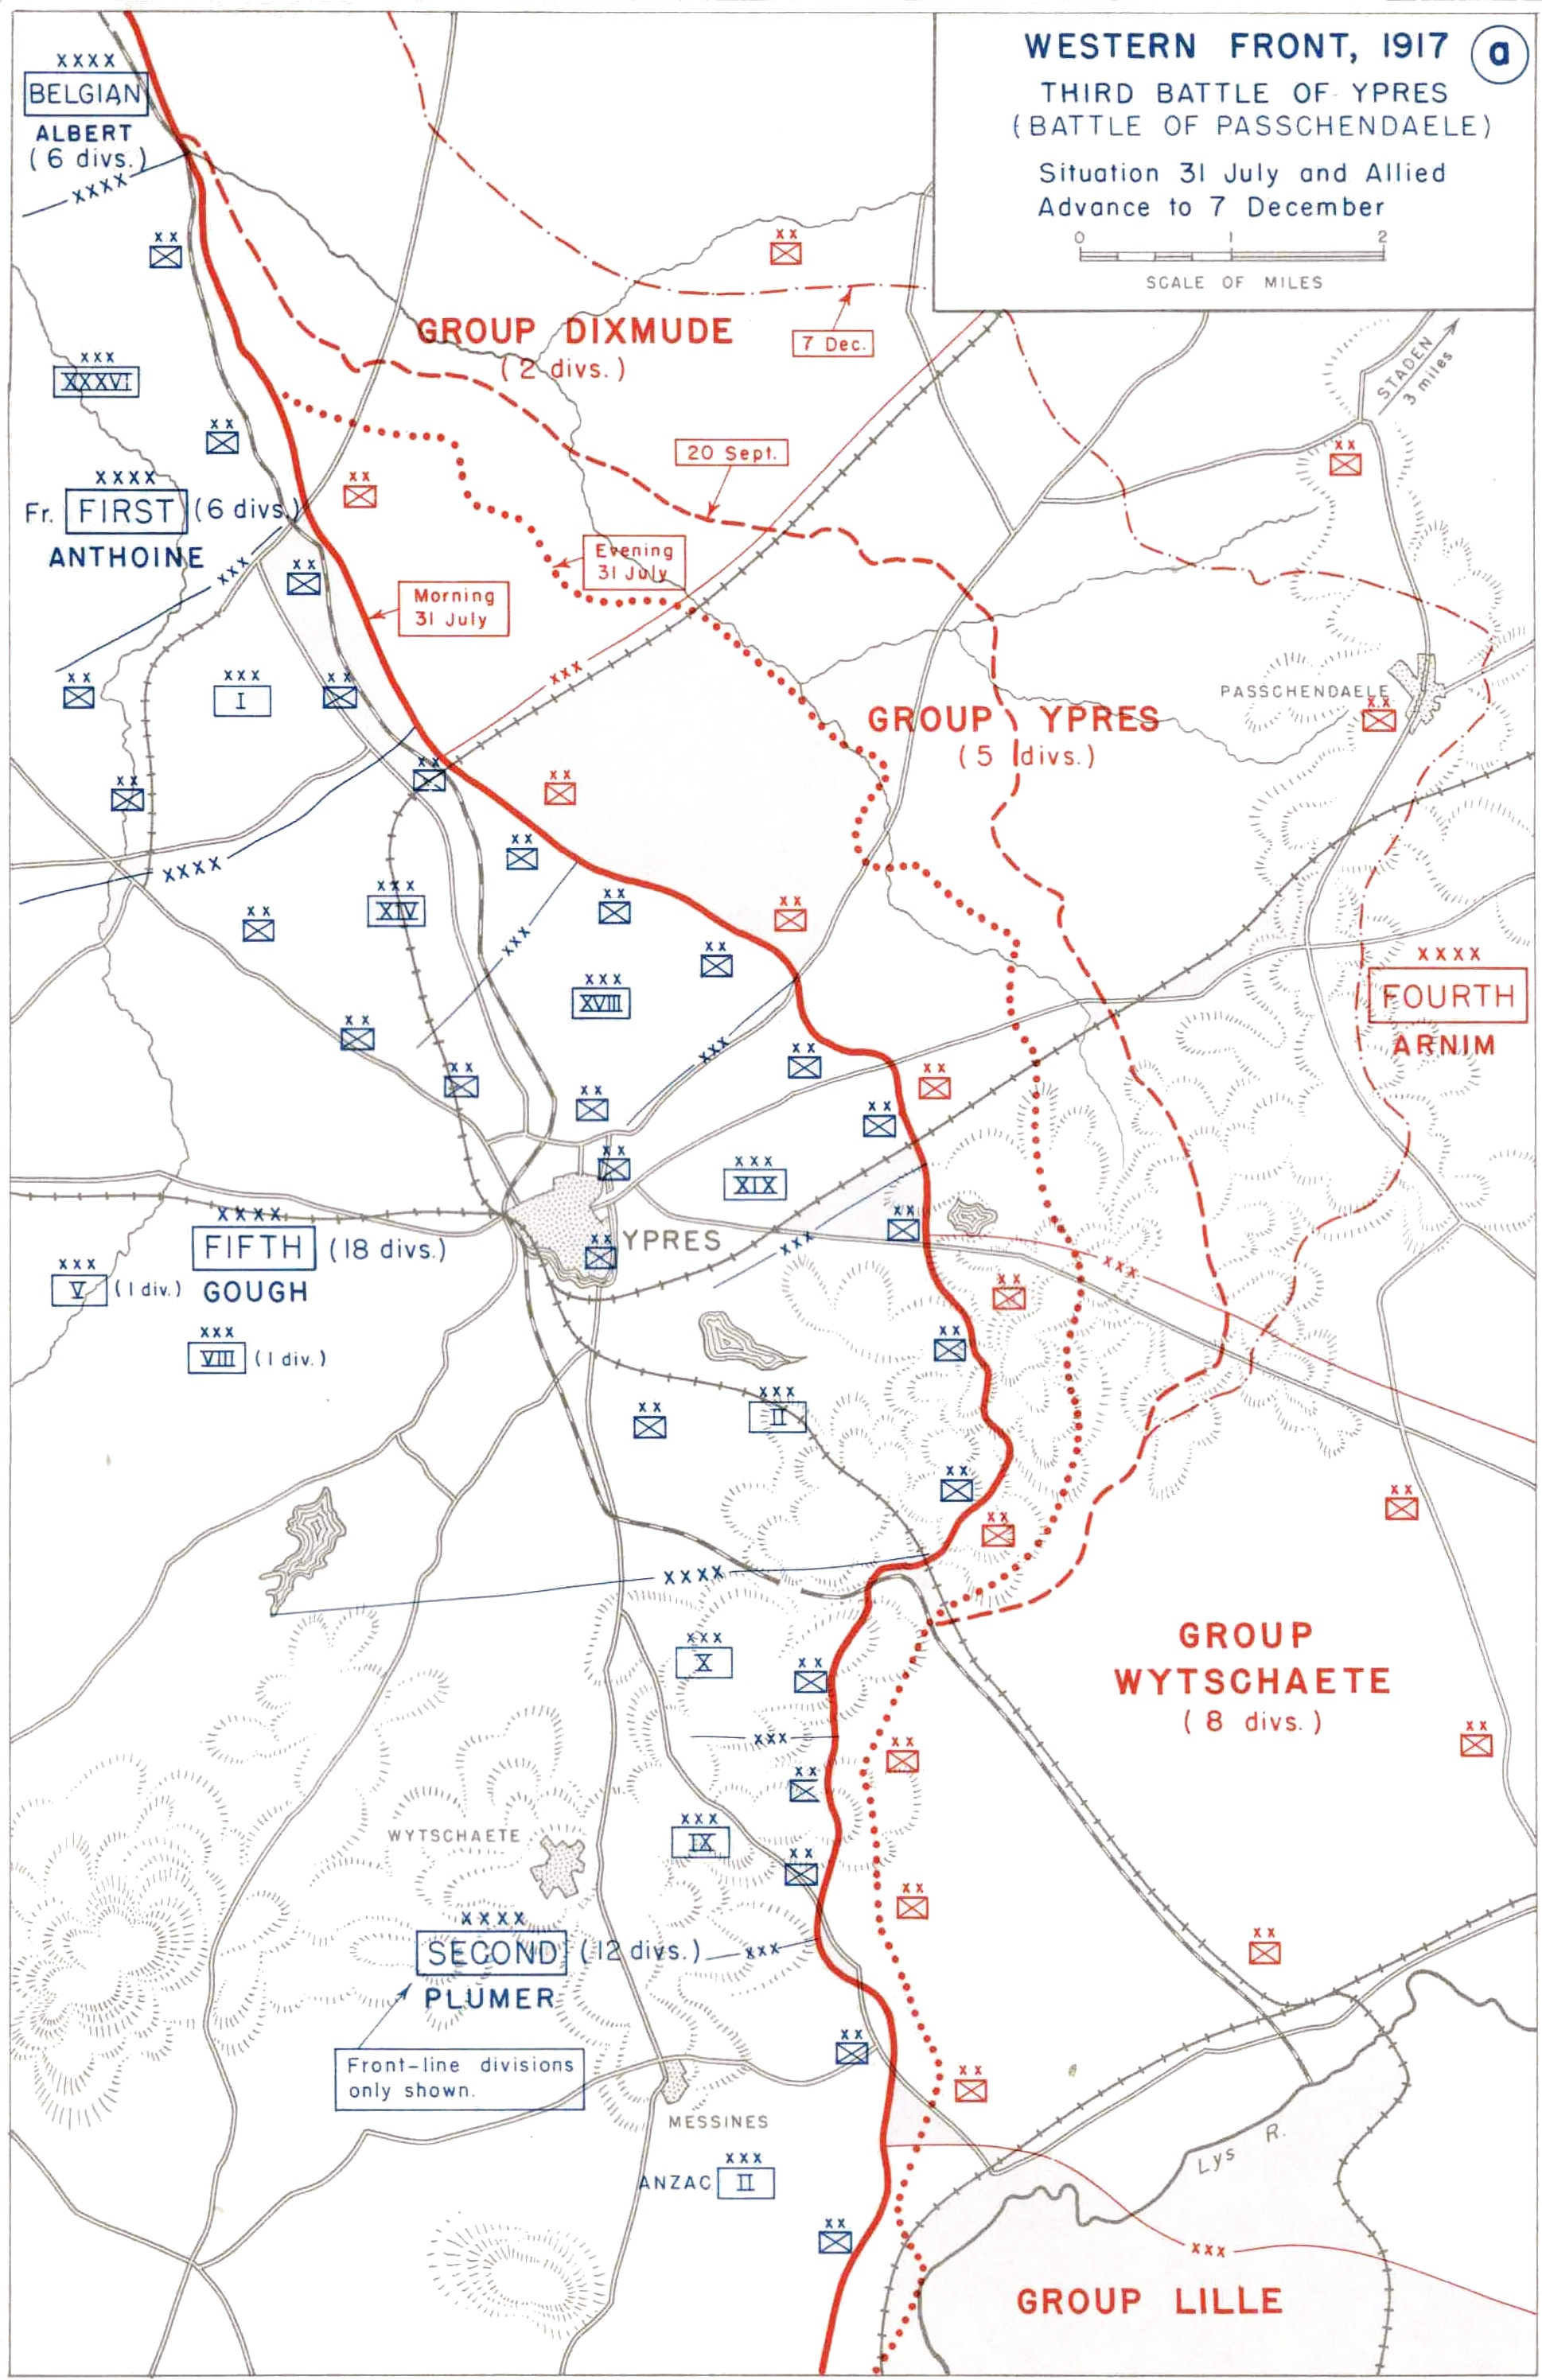 the history of the battle of passchendaele officially known as the third battle of ypres The australian infantry divisions joined the third battle of ypres which had read more about the battle of passchendaele (third ypres) official history by c.